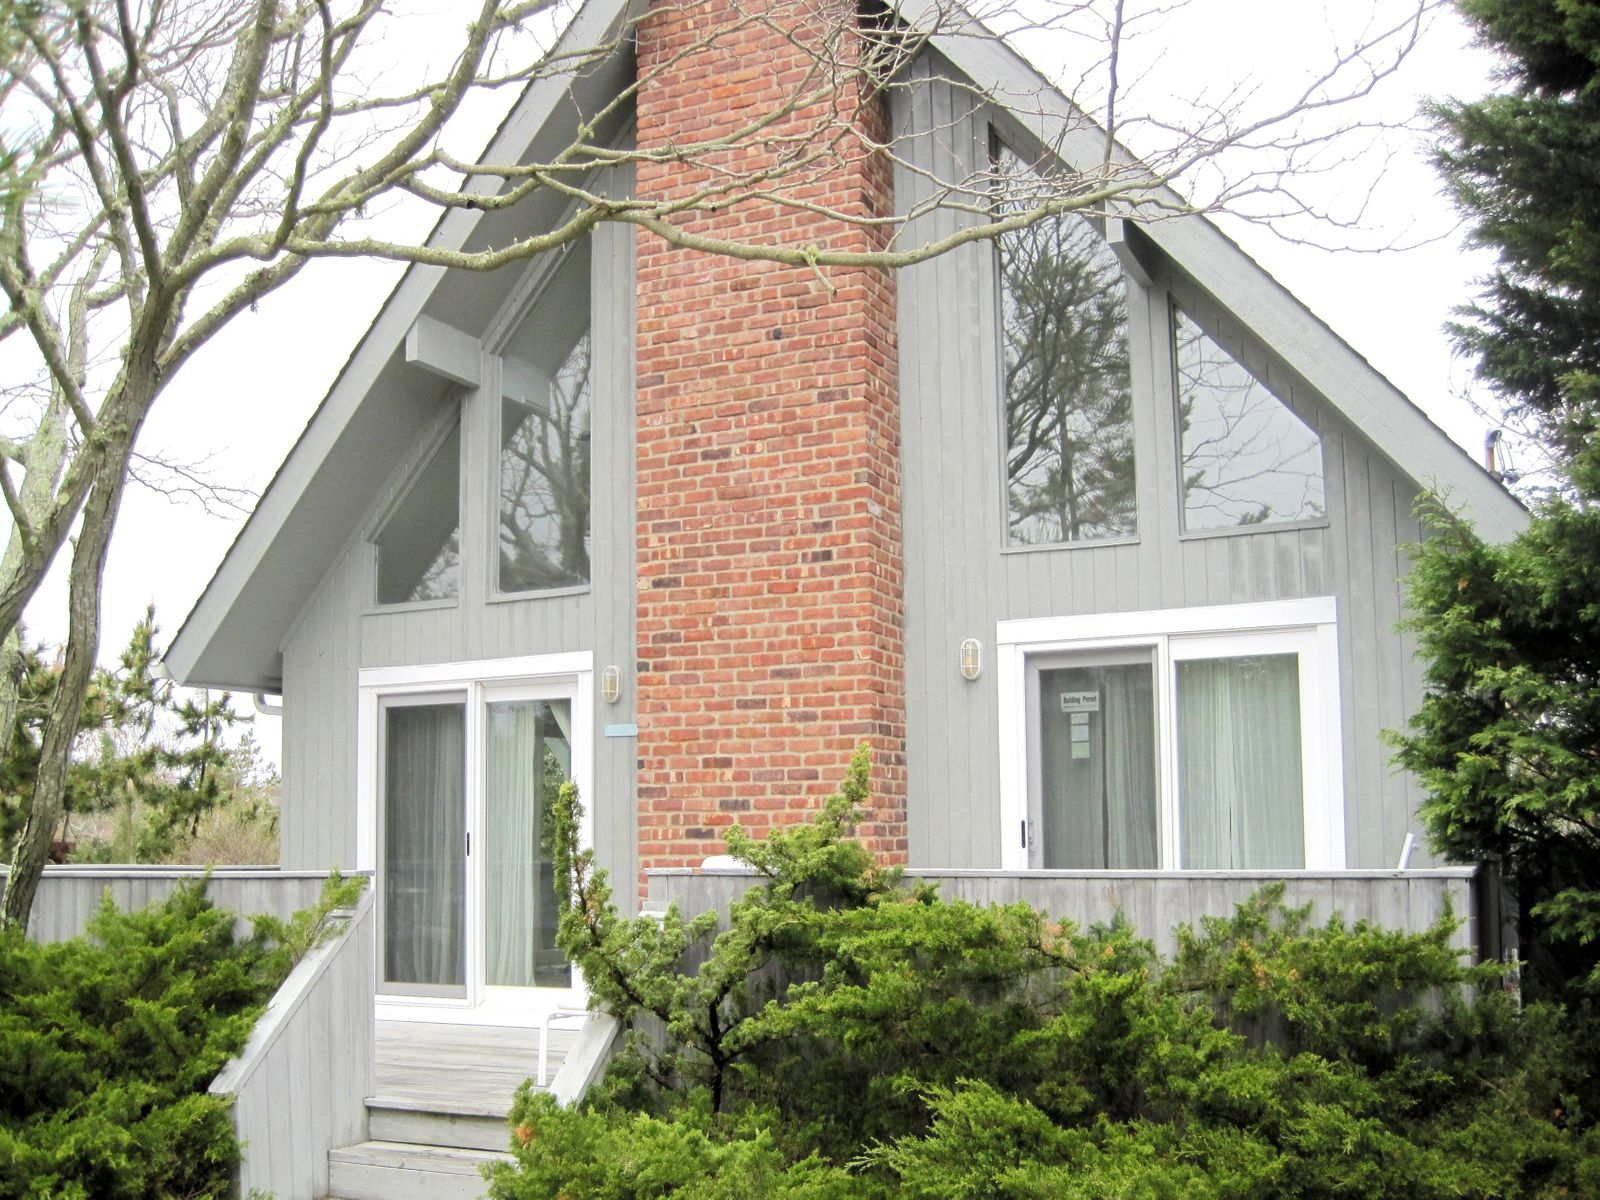 Beach Cottage, Amagansett NY Single Family Home - Hamptons Real Estate